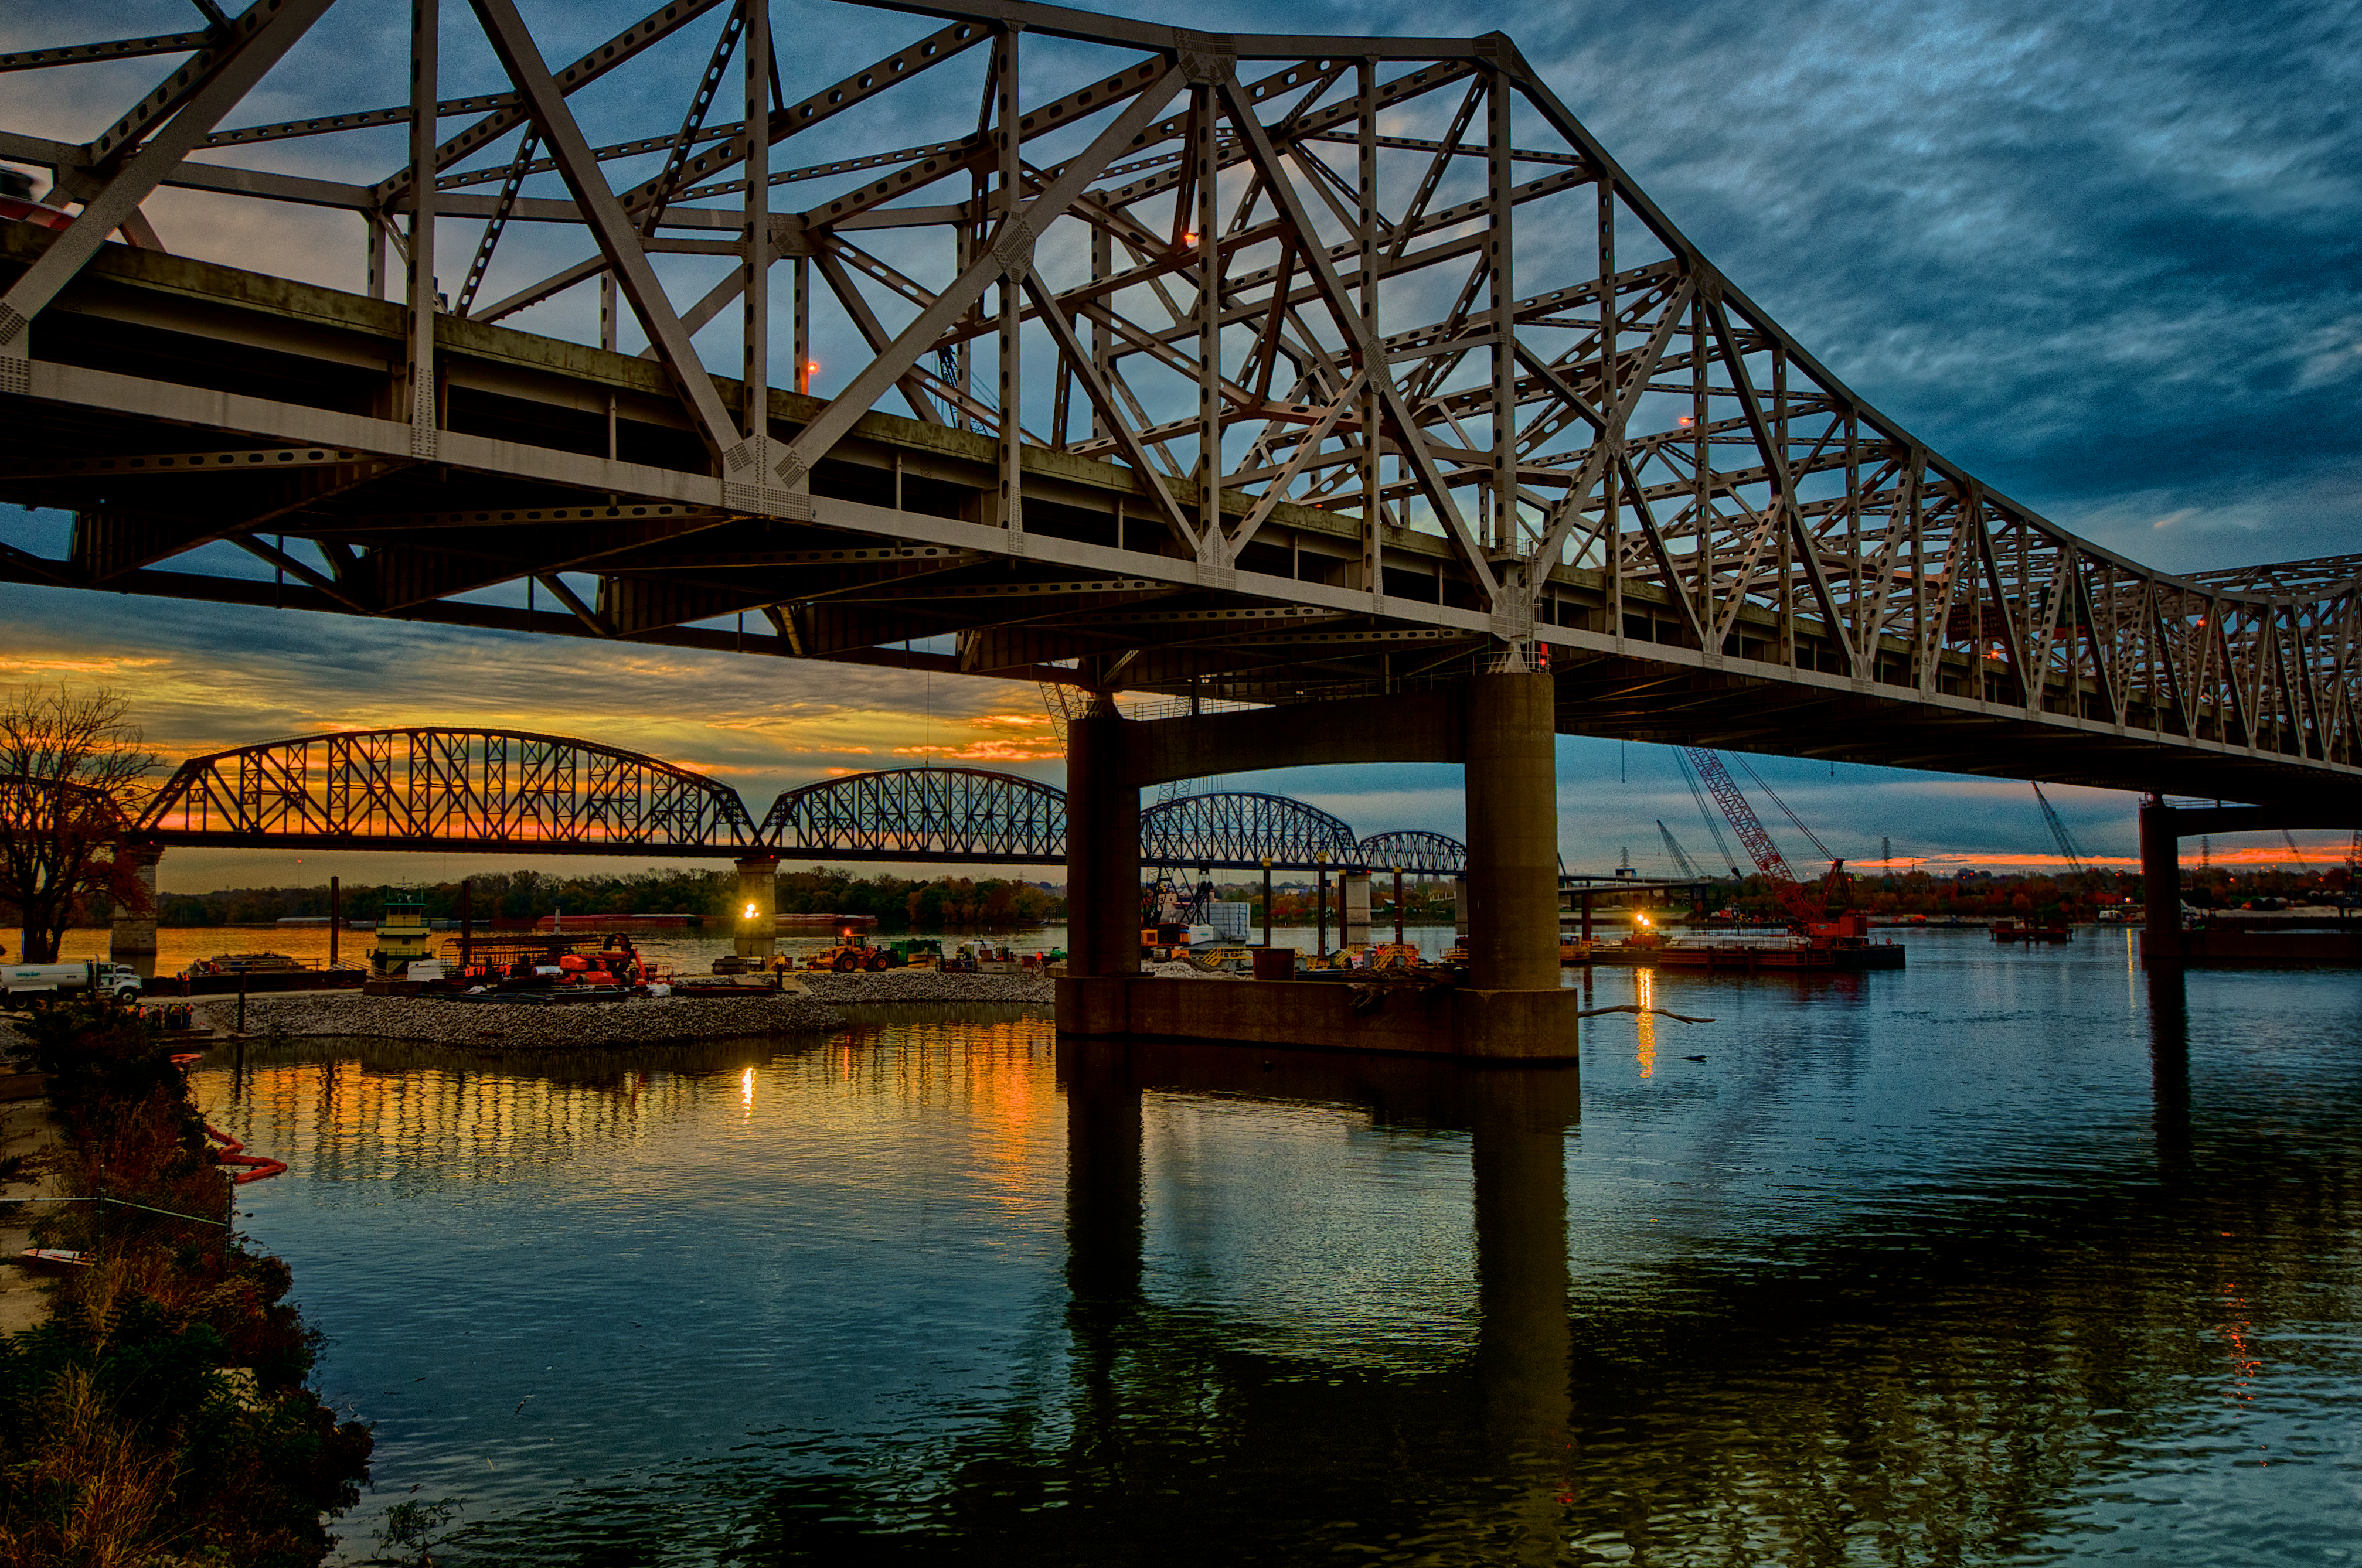 Ohio River Bridges Project Morning